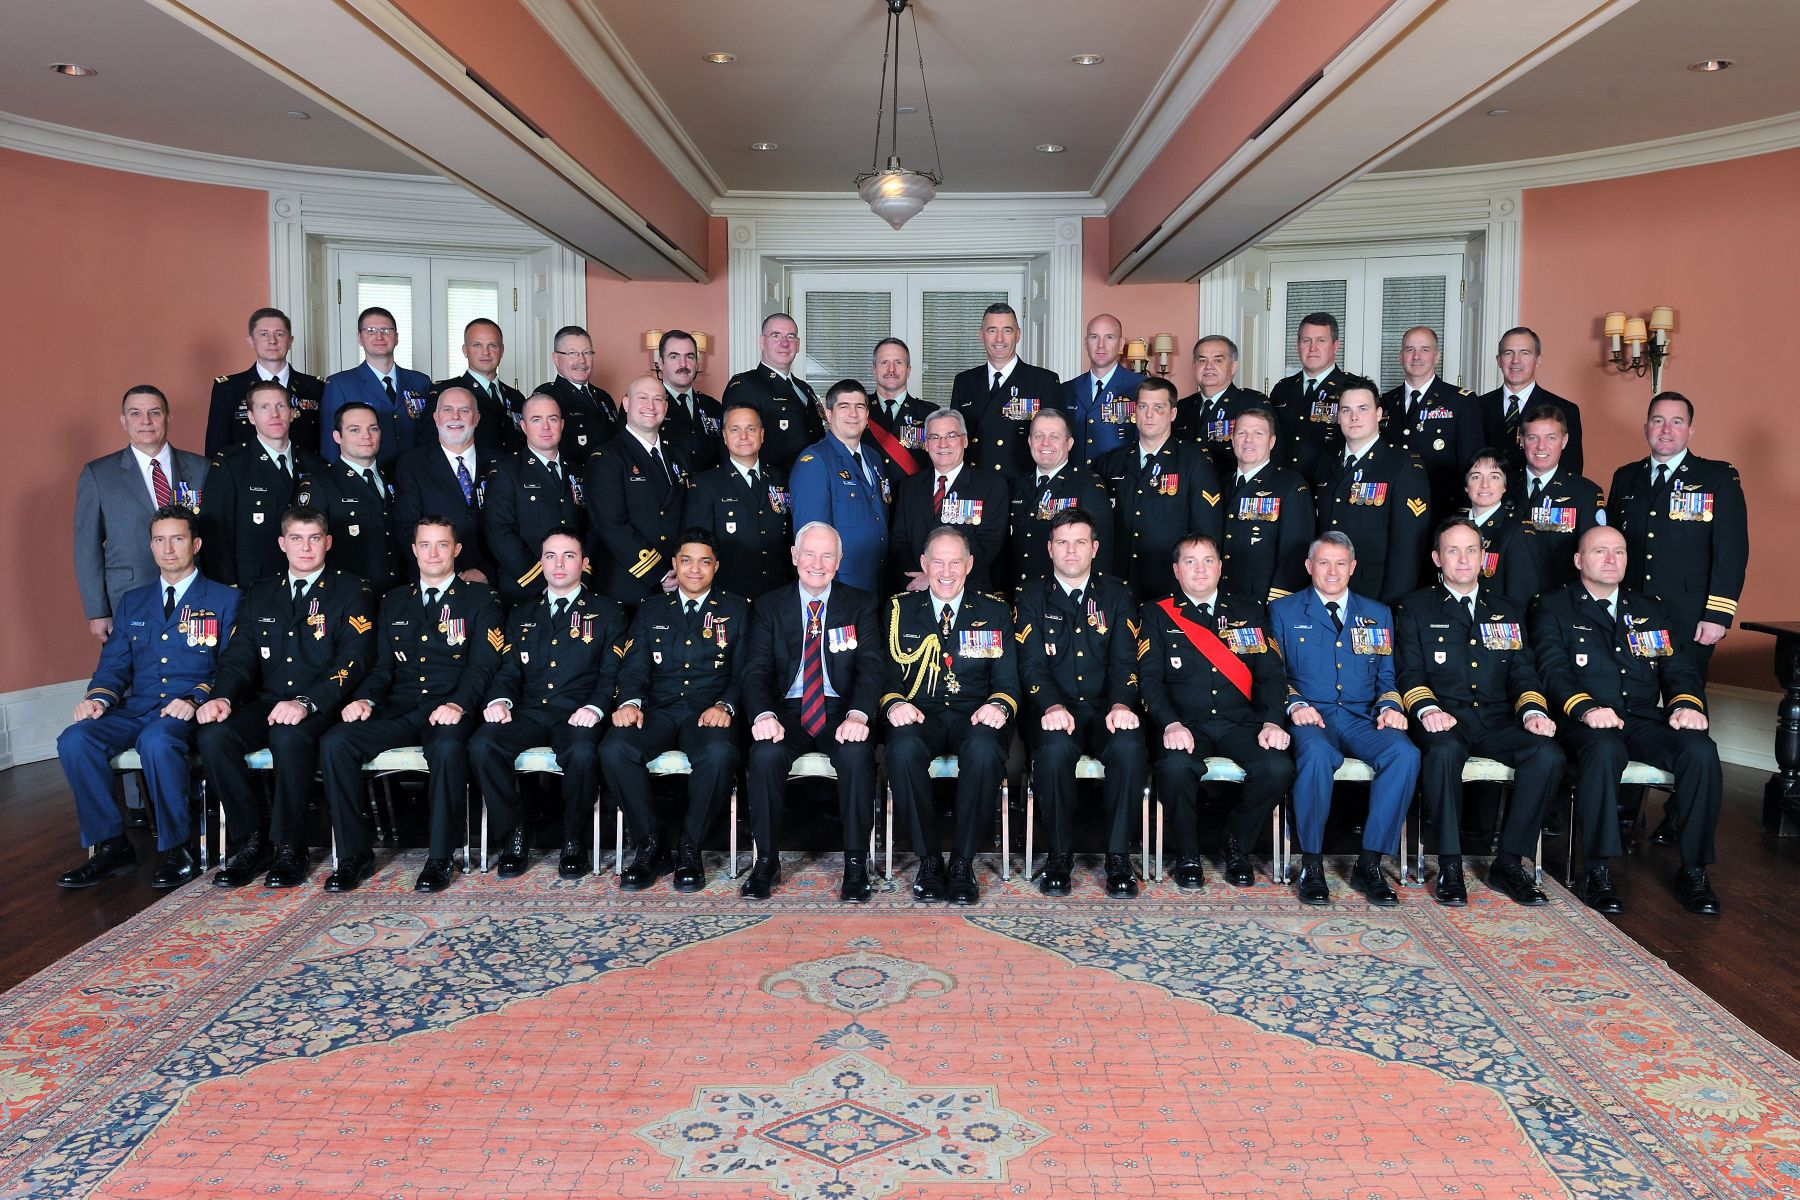 His Excellency the Right Honourable David Johnston, Governor General of Canada, and General Walt Natynczyk, Chief of the Defence Staff, are pictured with the 39 recipients who were presented with military decorations.